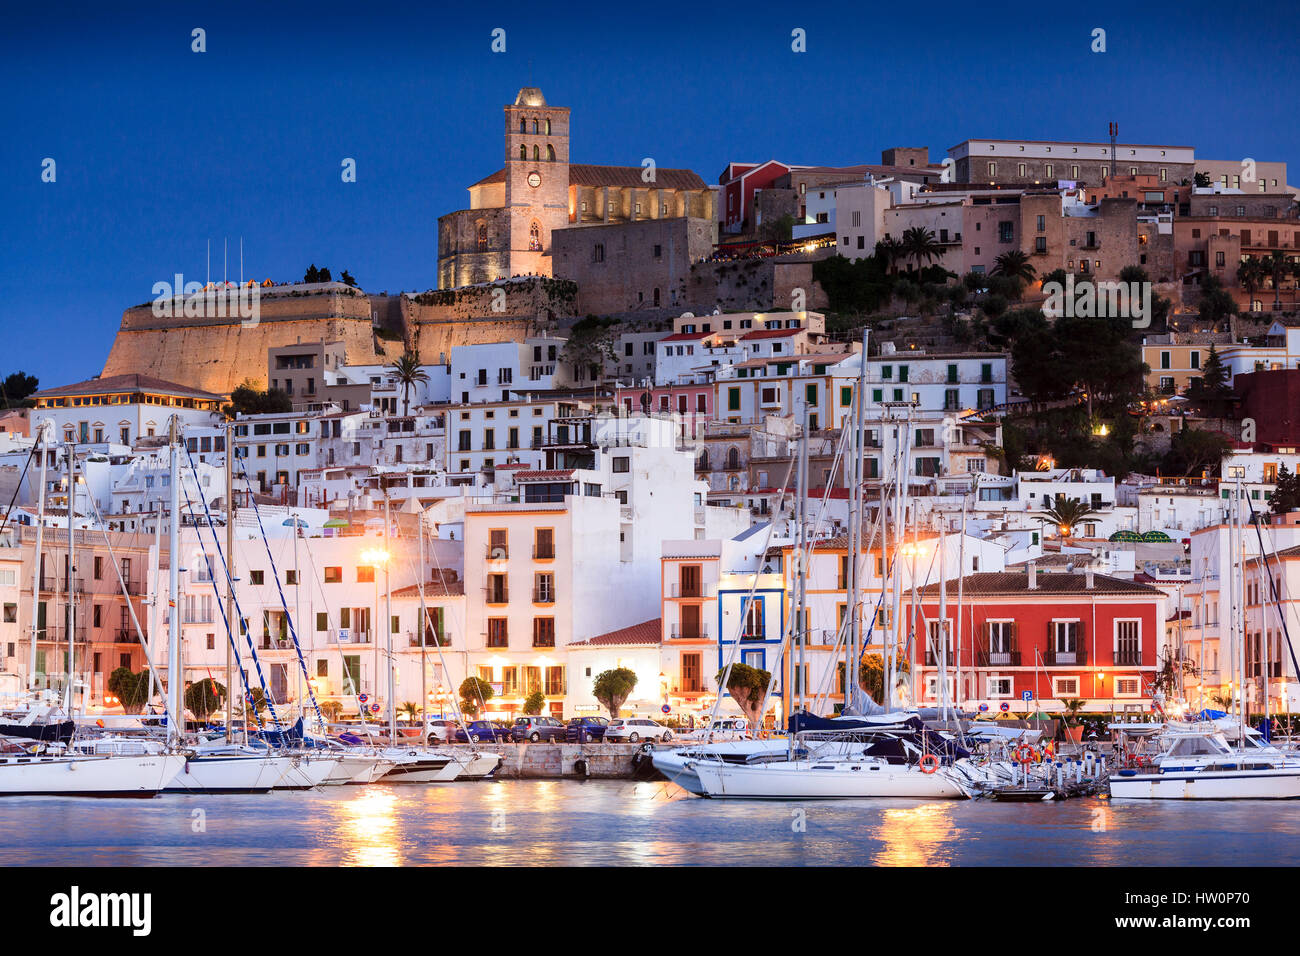 Ibiza Town harbour and old town, Ibiza, Balearic Islands, Spain - Stock Image